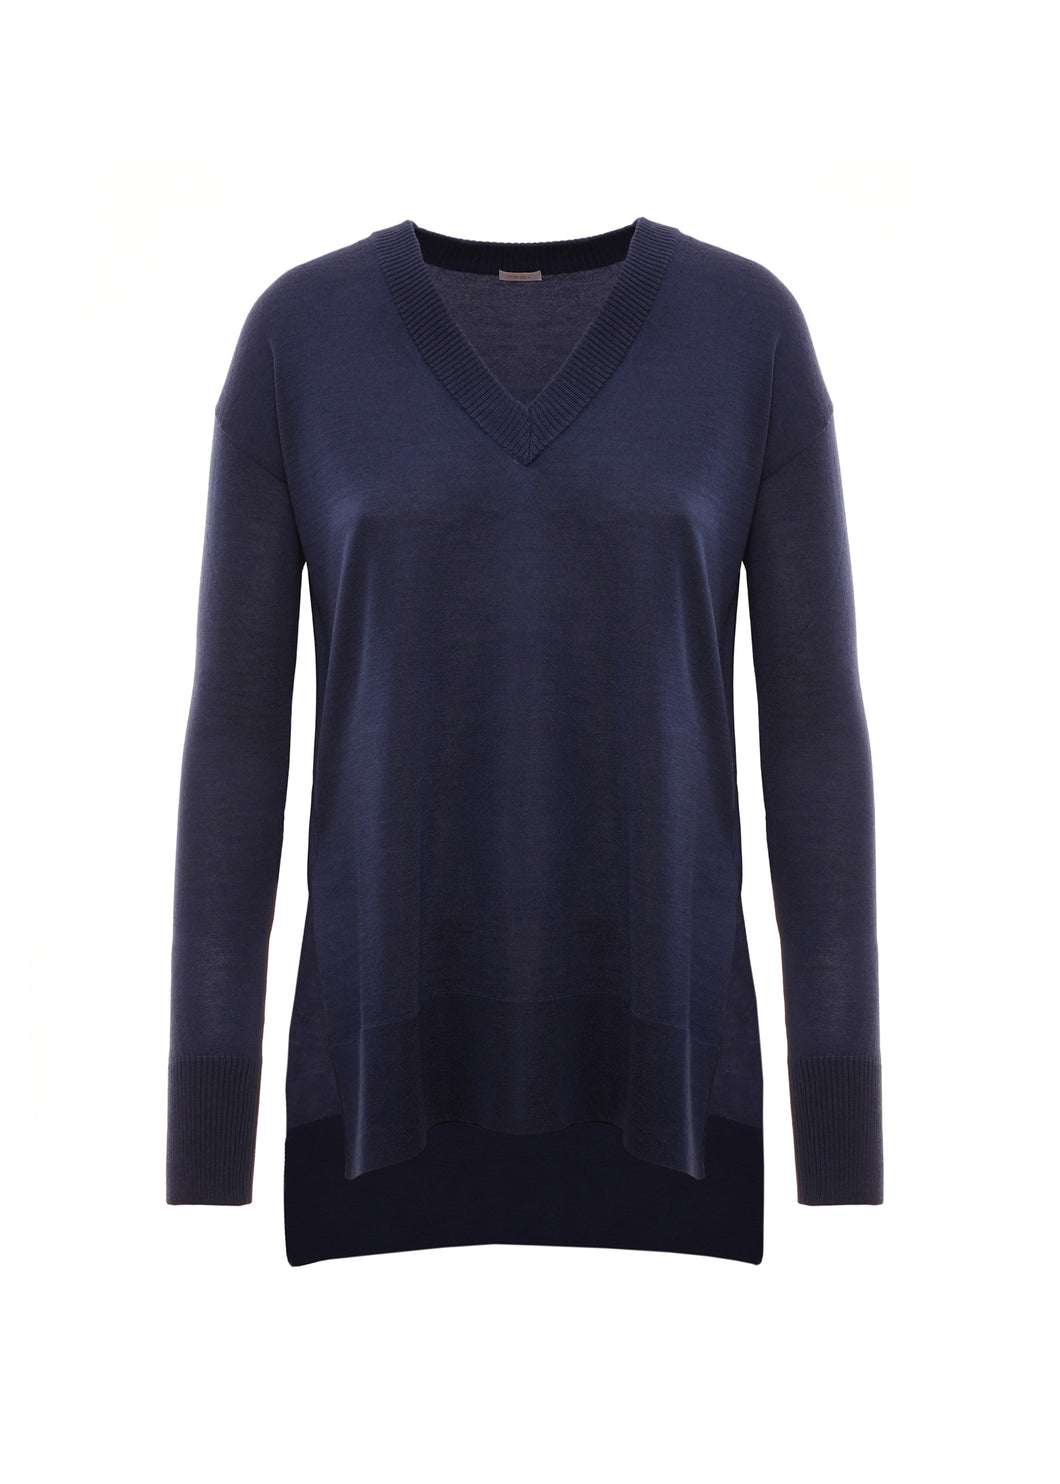 Shaved v neck in cashmere-silk